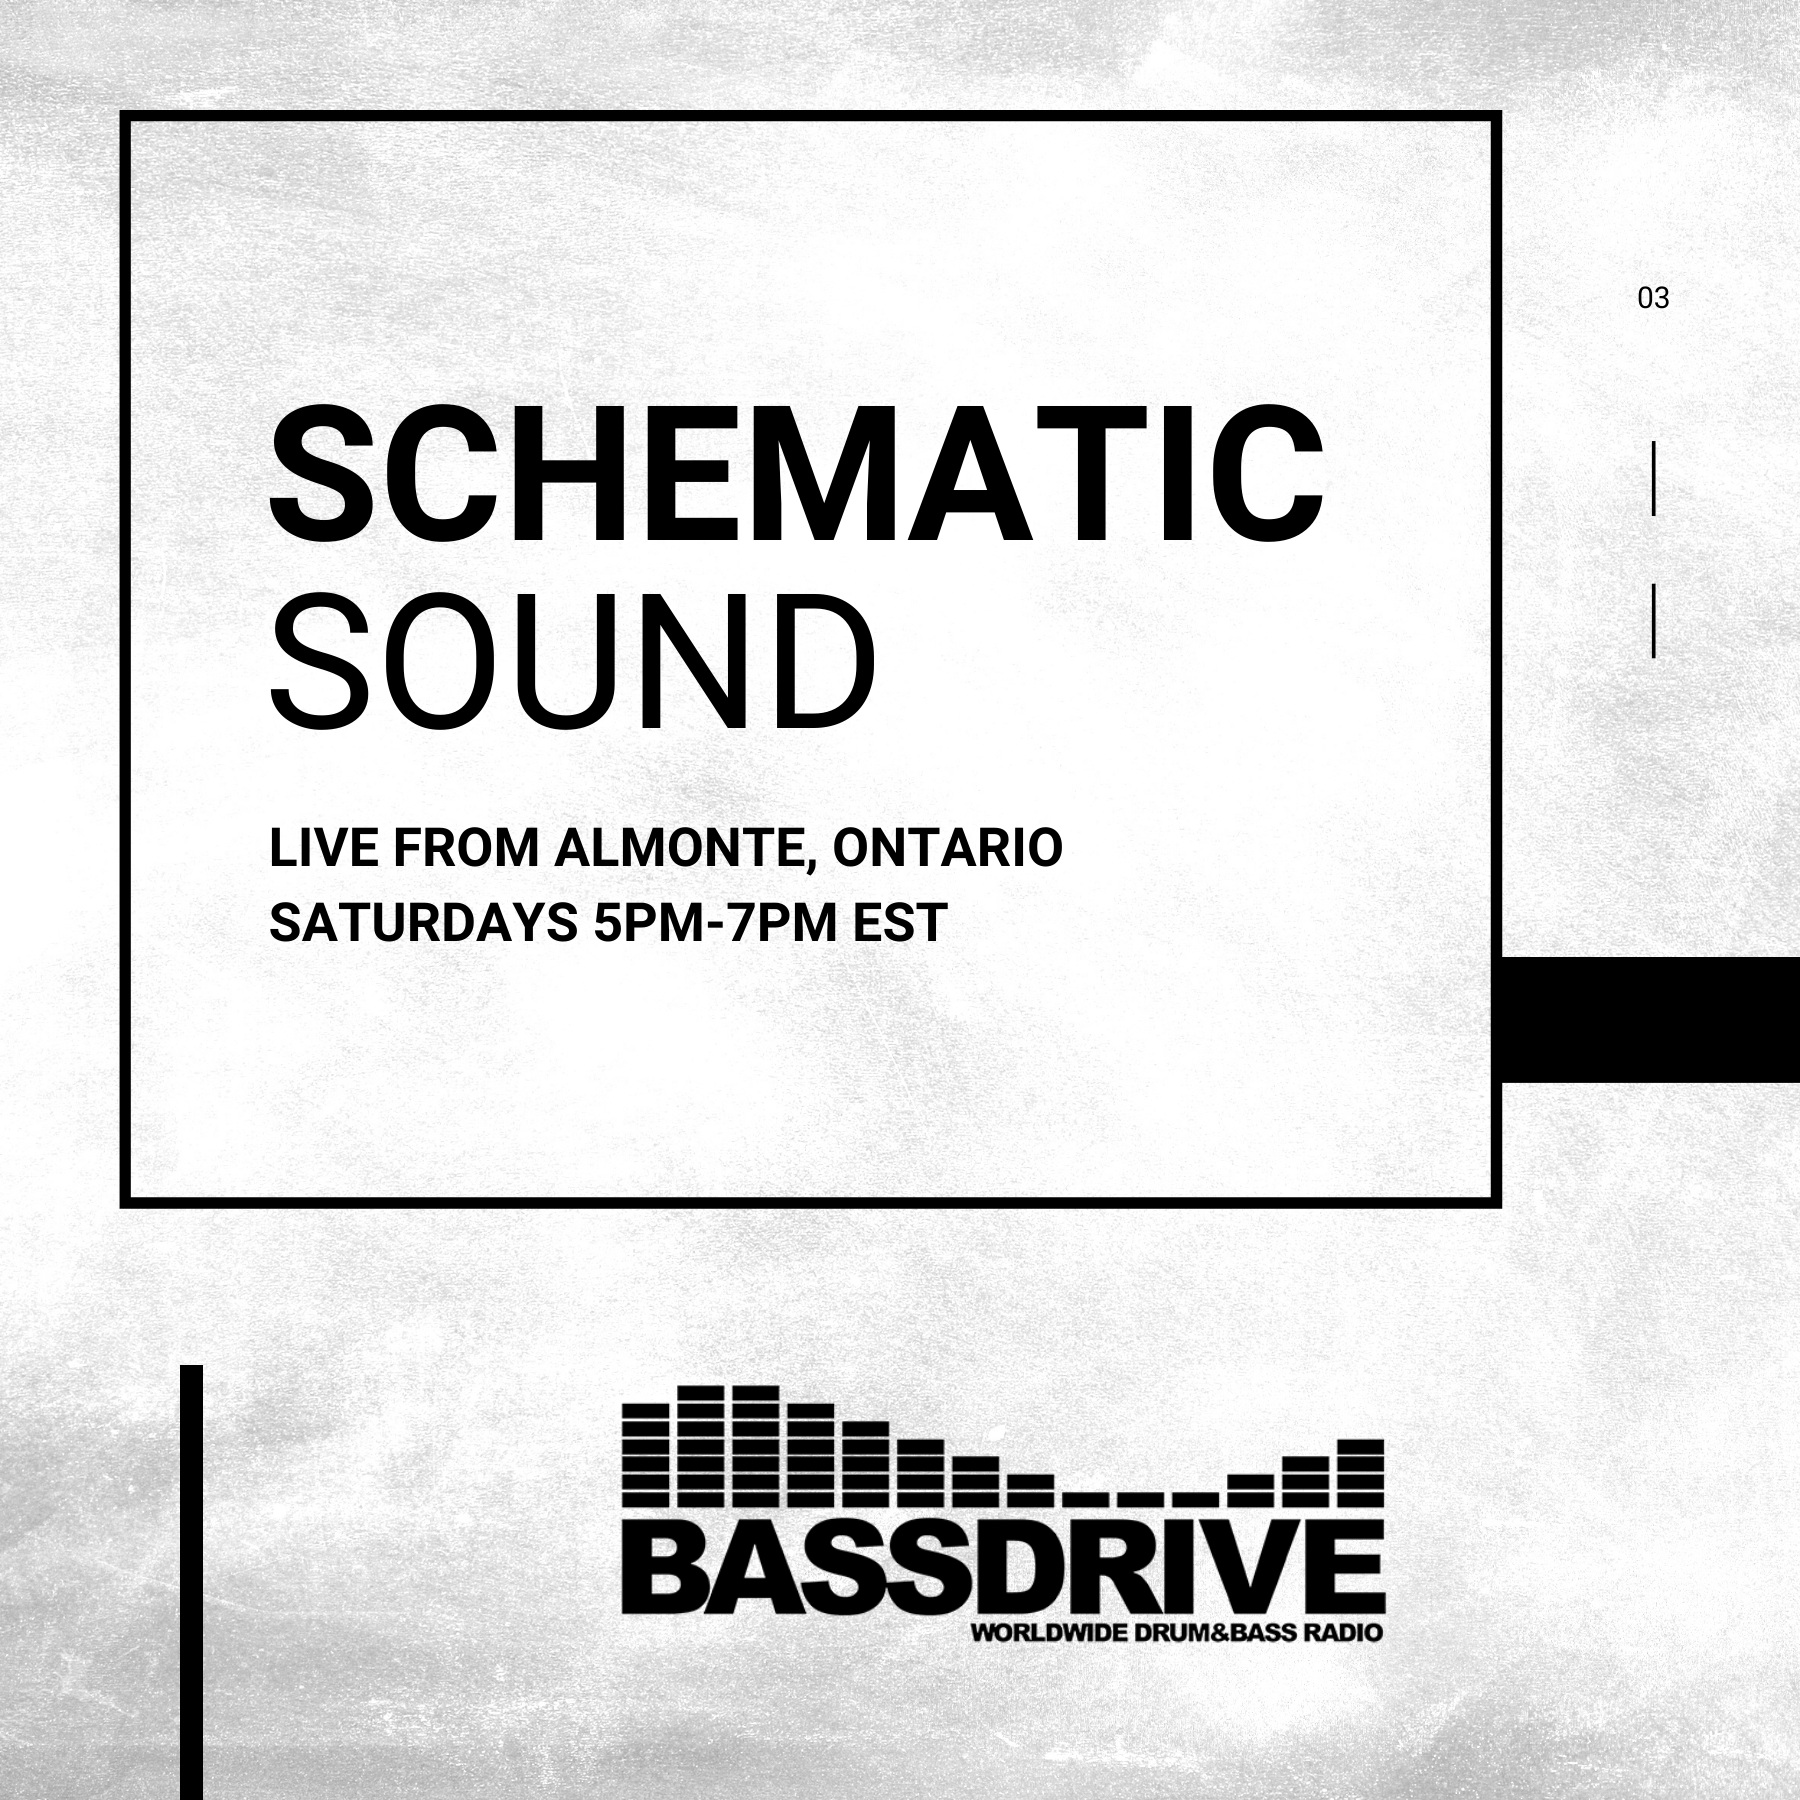 Schematic Sound LIVE on Bassdrive 03-14-2020